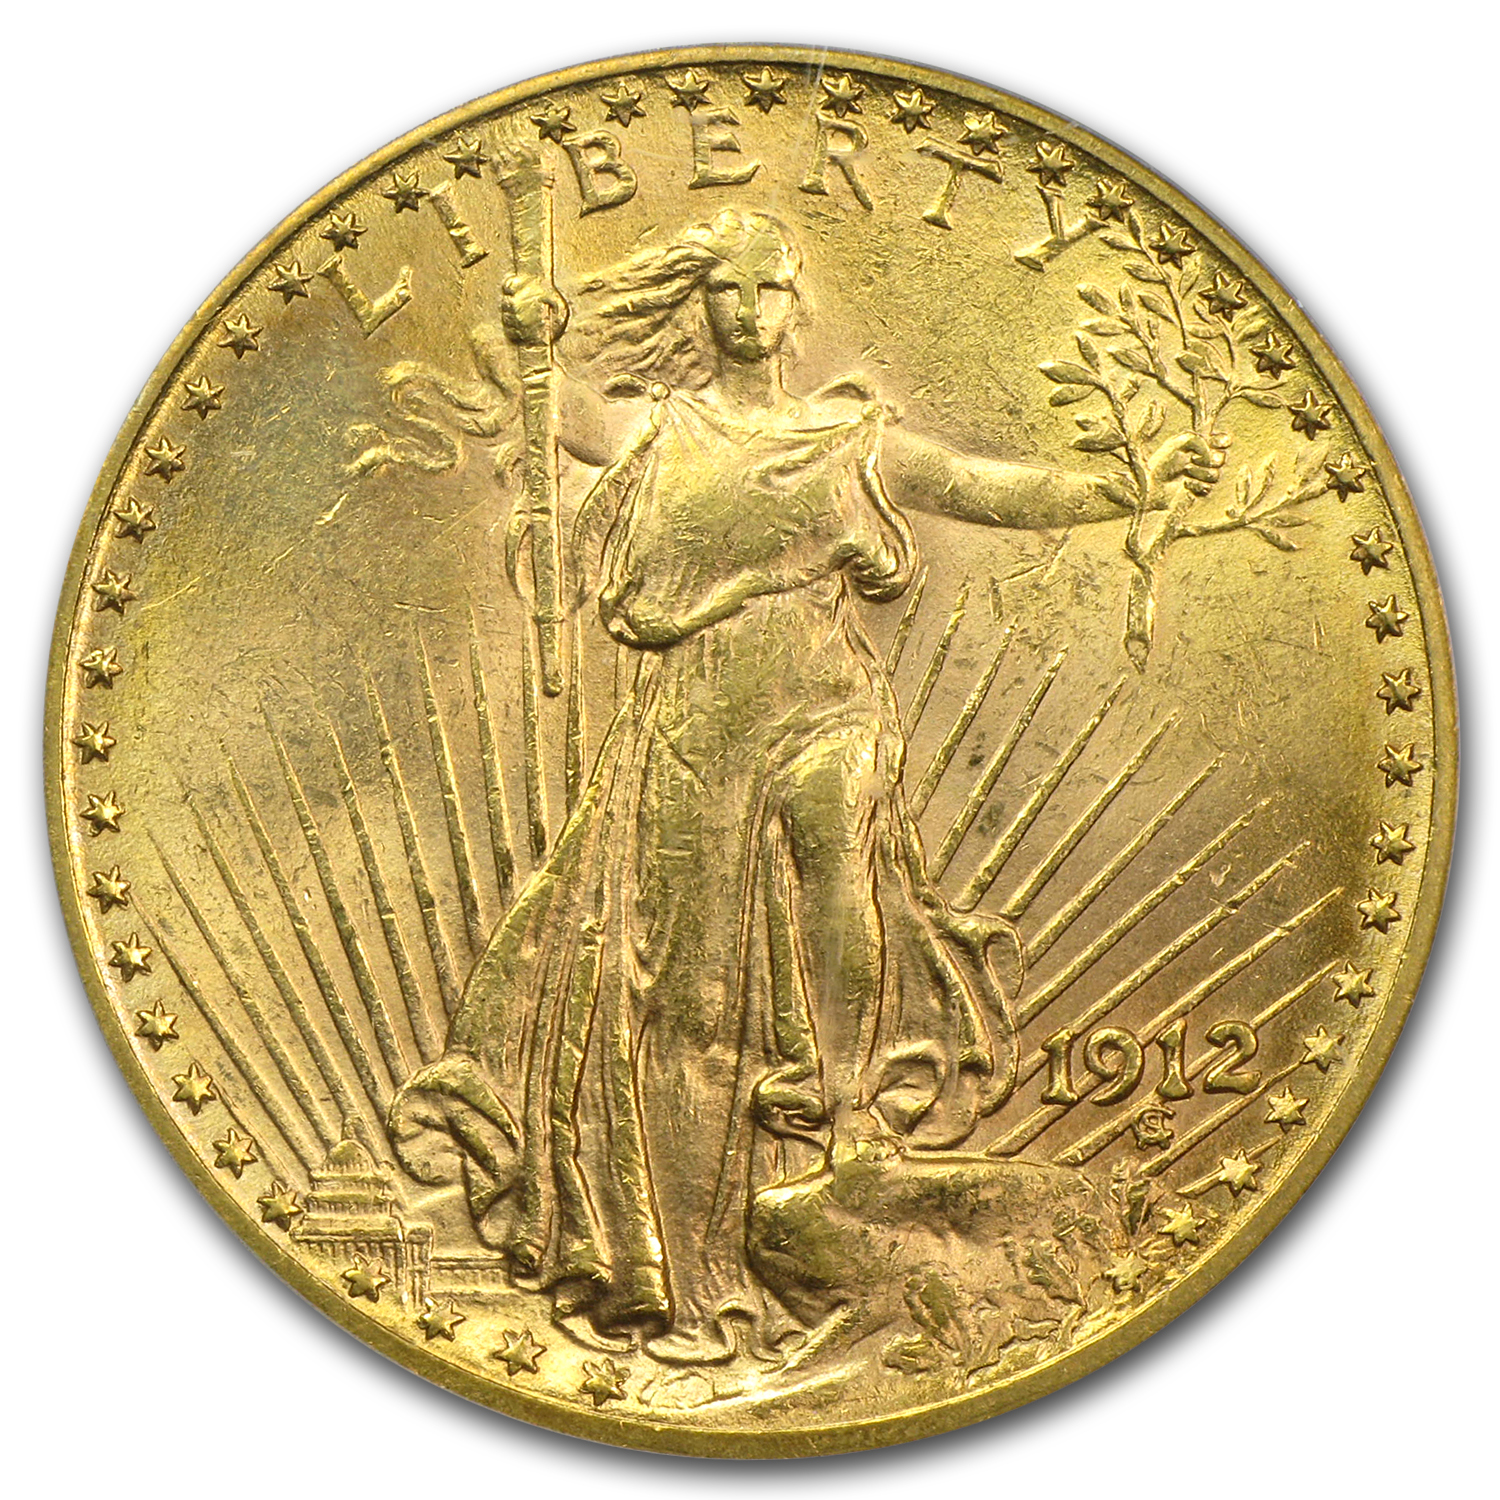 1912 $20 St. Gaudens Gold Double Eagle - MS-61 PCGS